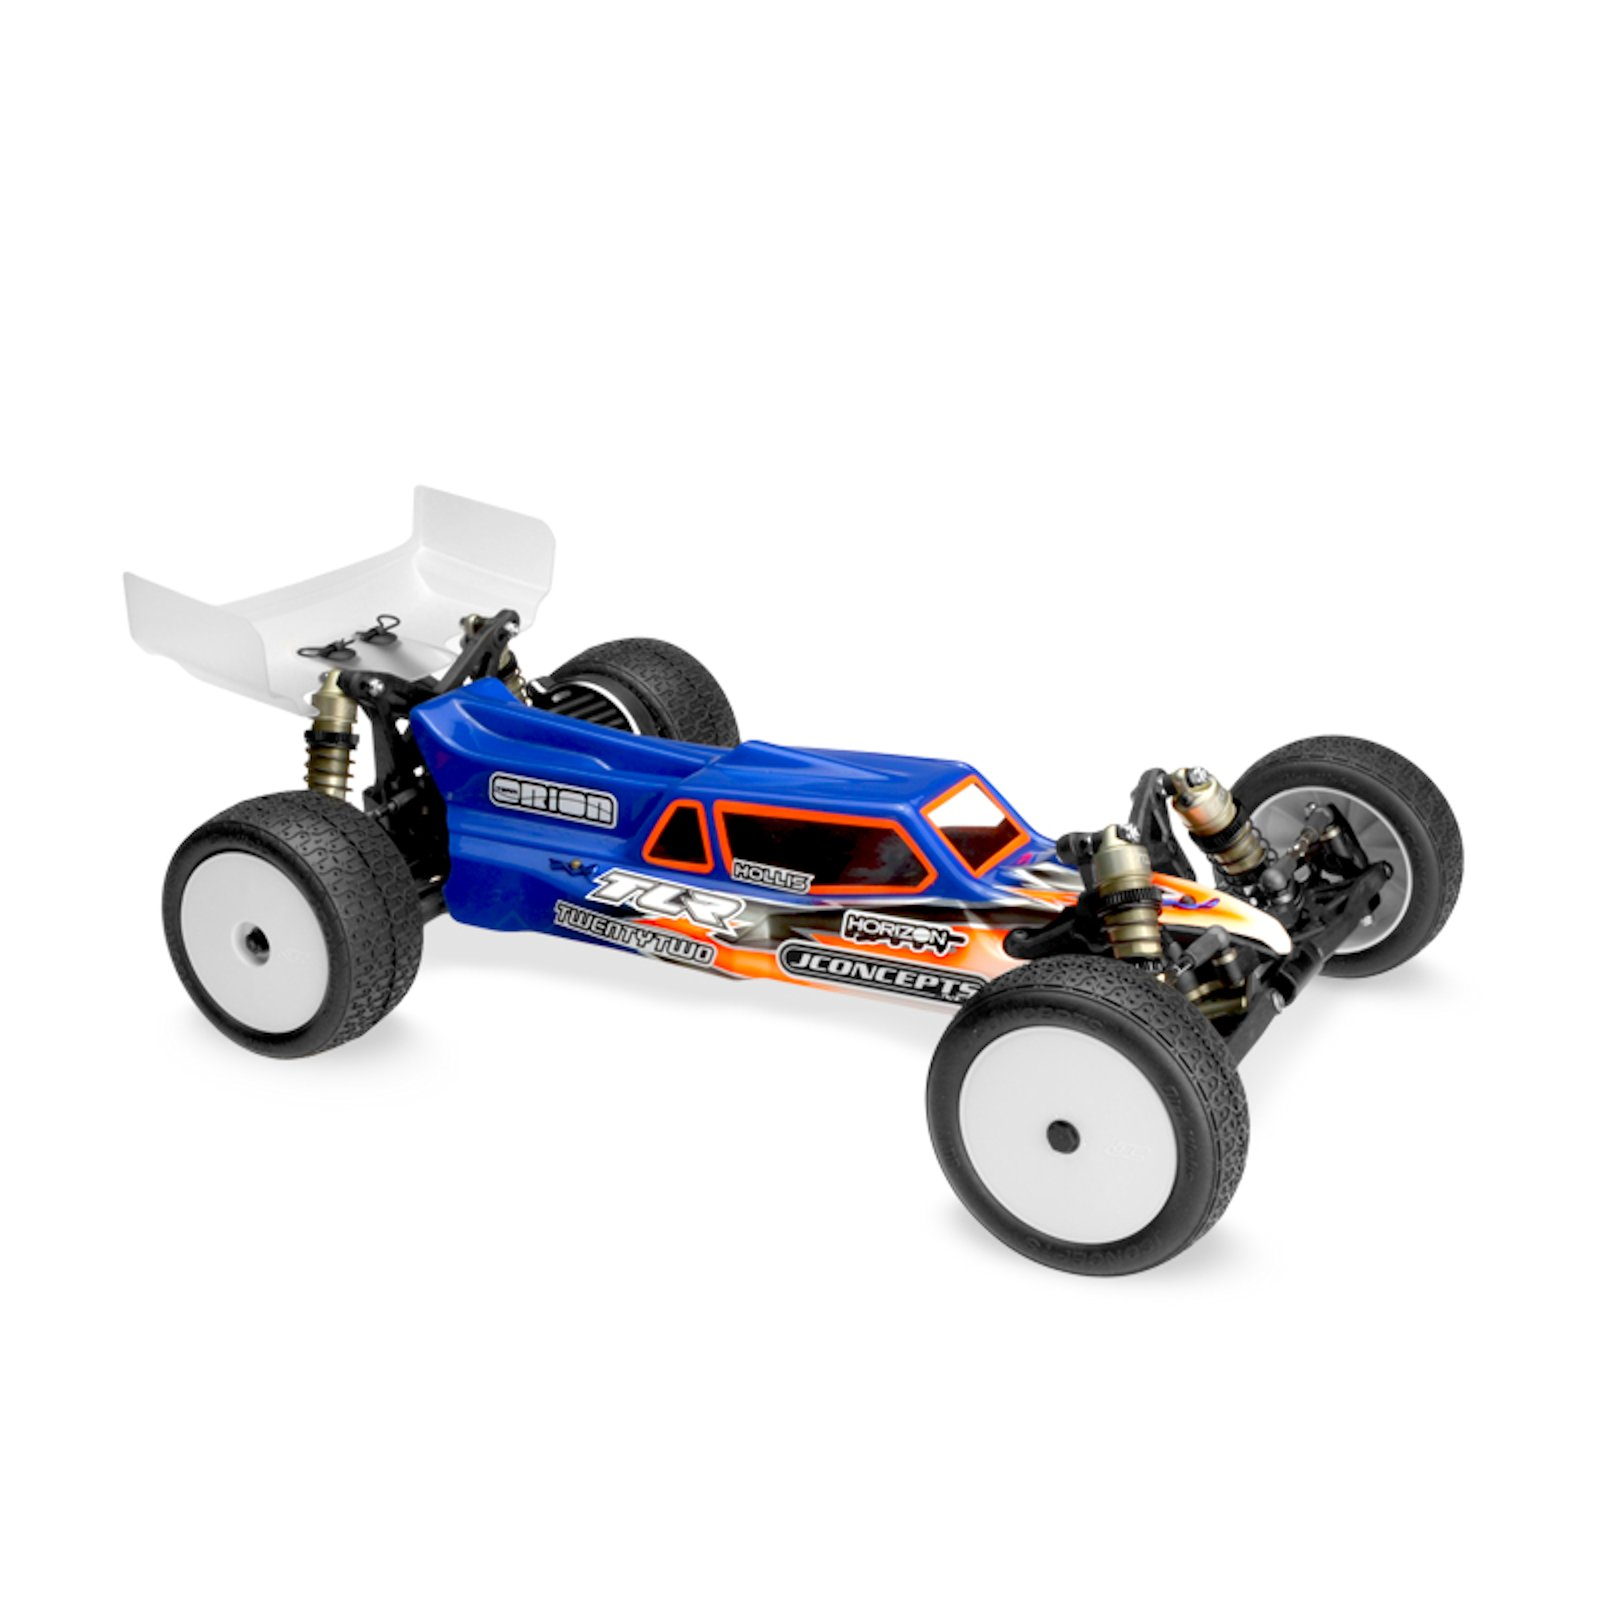 TLR 22 3.0 Body with 6.5 Wing